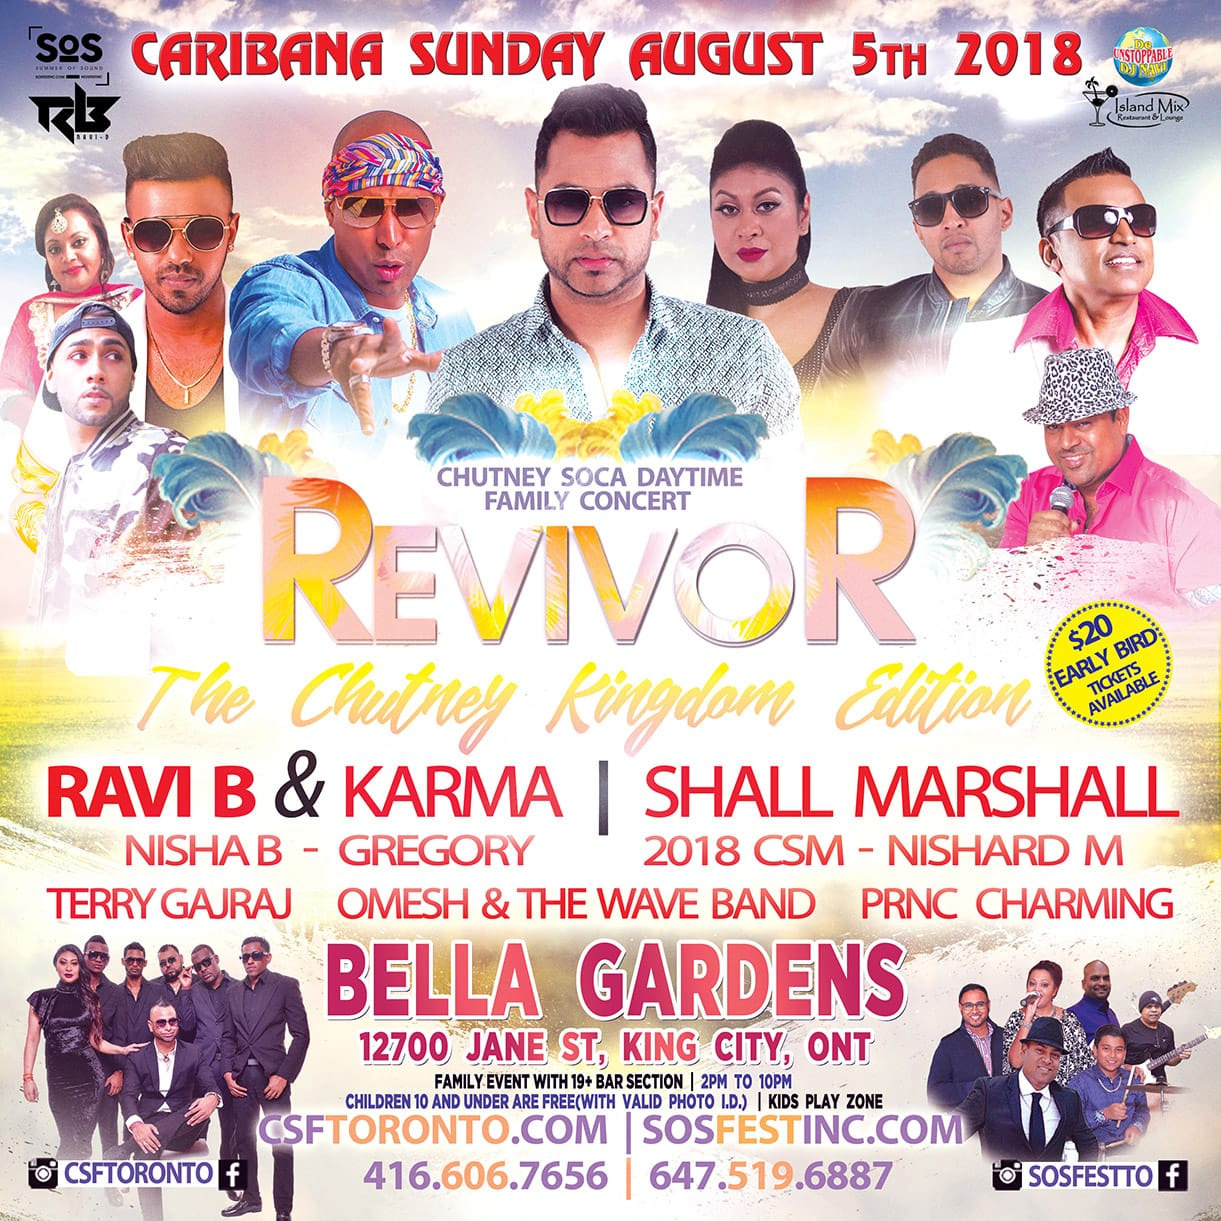 REVIVOR | Toronto Carnival Sunday Day Time Concert